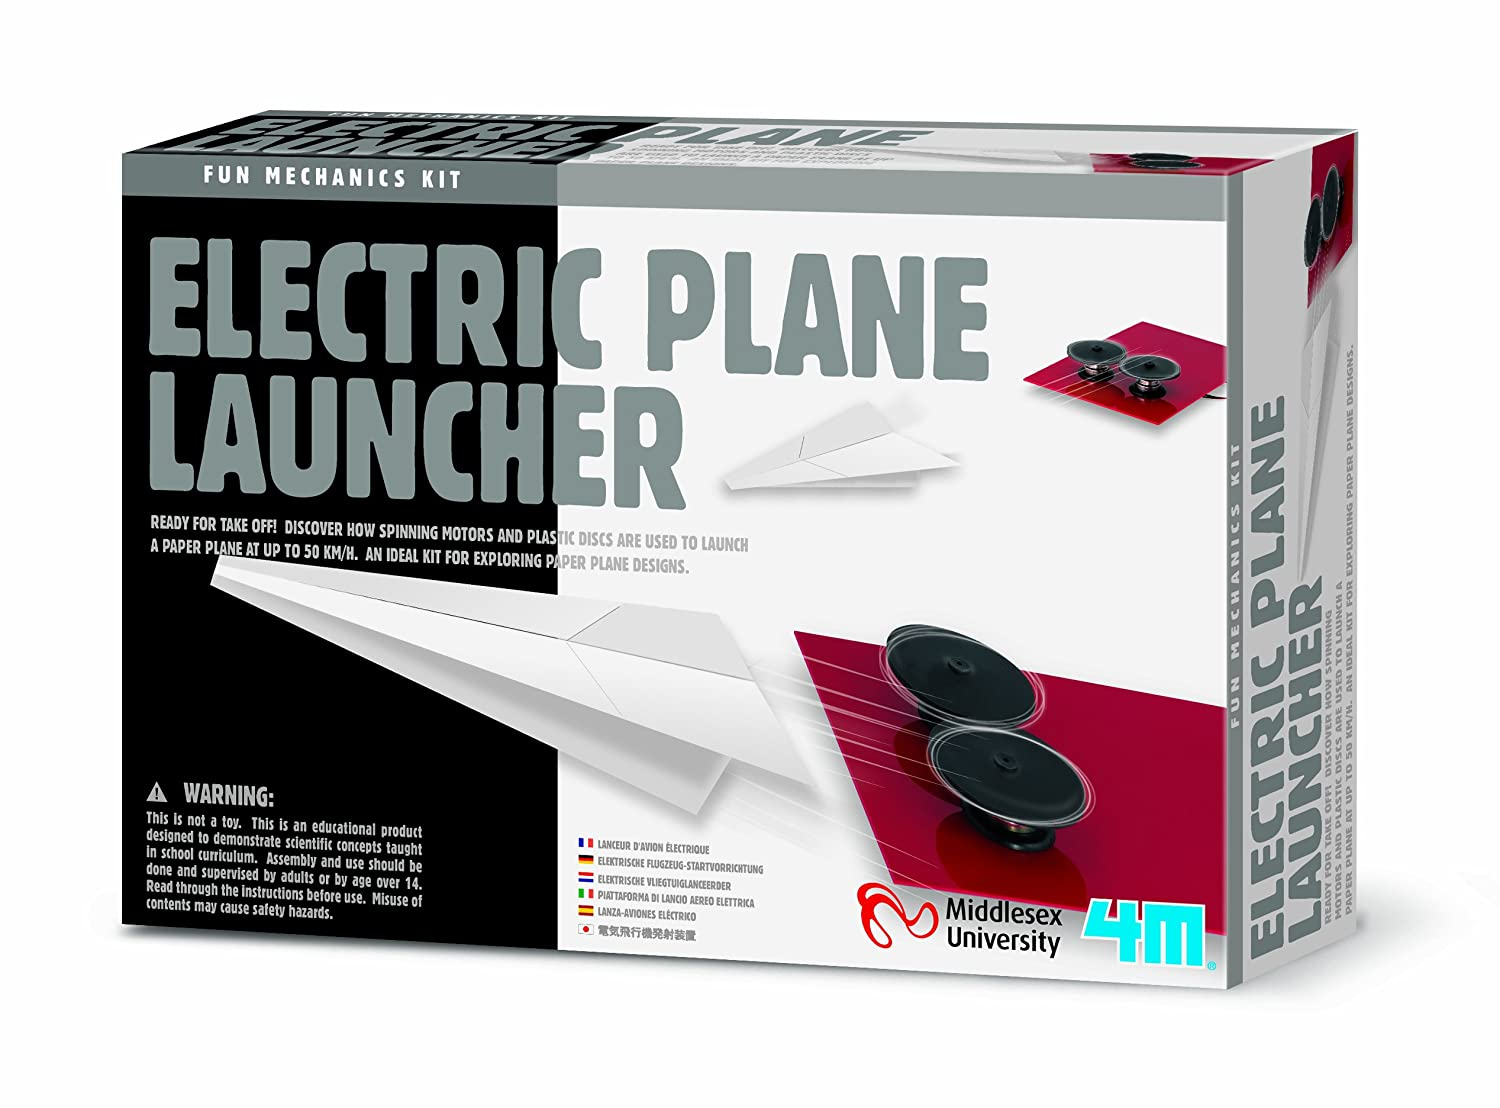 Entertaining Science Set Educational Science Toys /& Games Gift Present Idea For Birthdays Age 14 Girls Boys Teenagers Children Create Electric Paper Plane Launcher